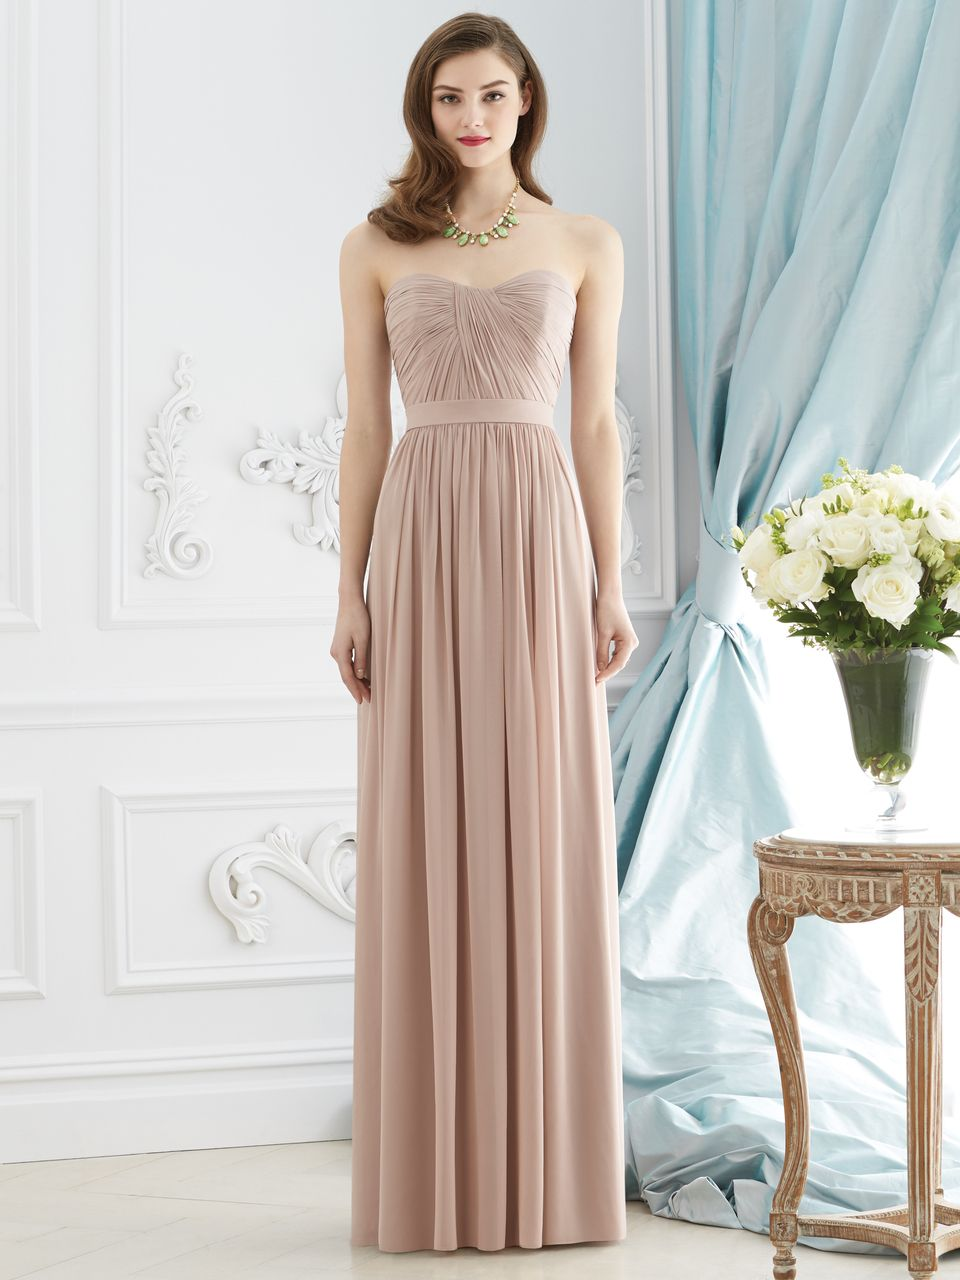 Dessy collection bridesmaid dress style 2943 blush bridal dessy collection bridesmaid dress style 2943 blush bridal ombrellifo Gallery